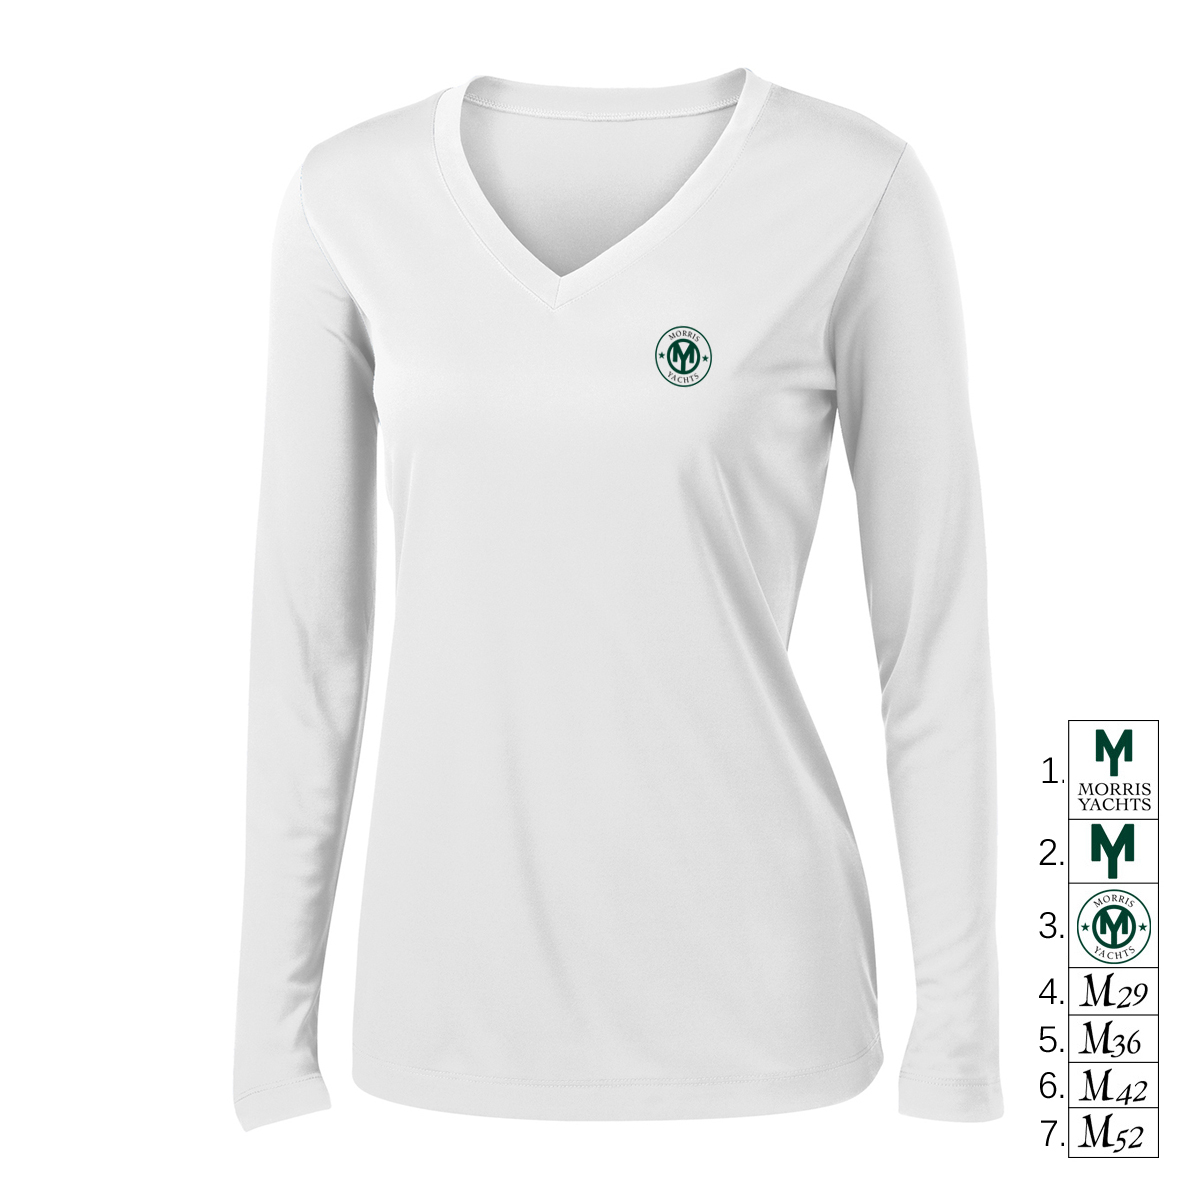 MORRIS YACHTS - WMNS LONG SLEEVE TECH TEE